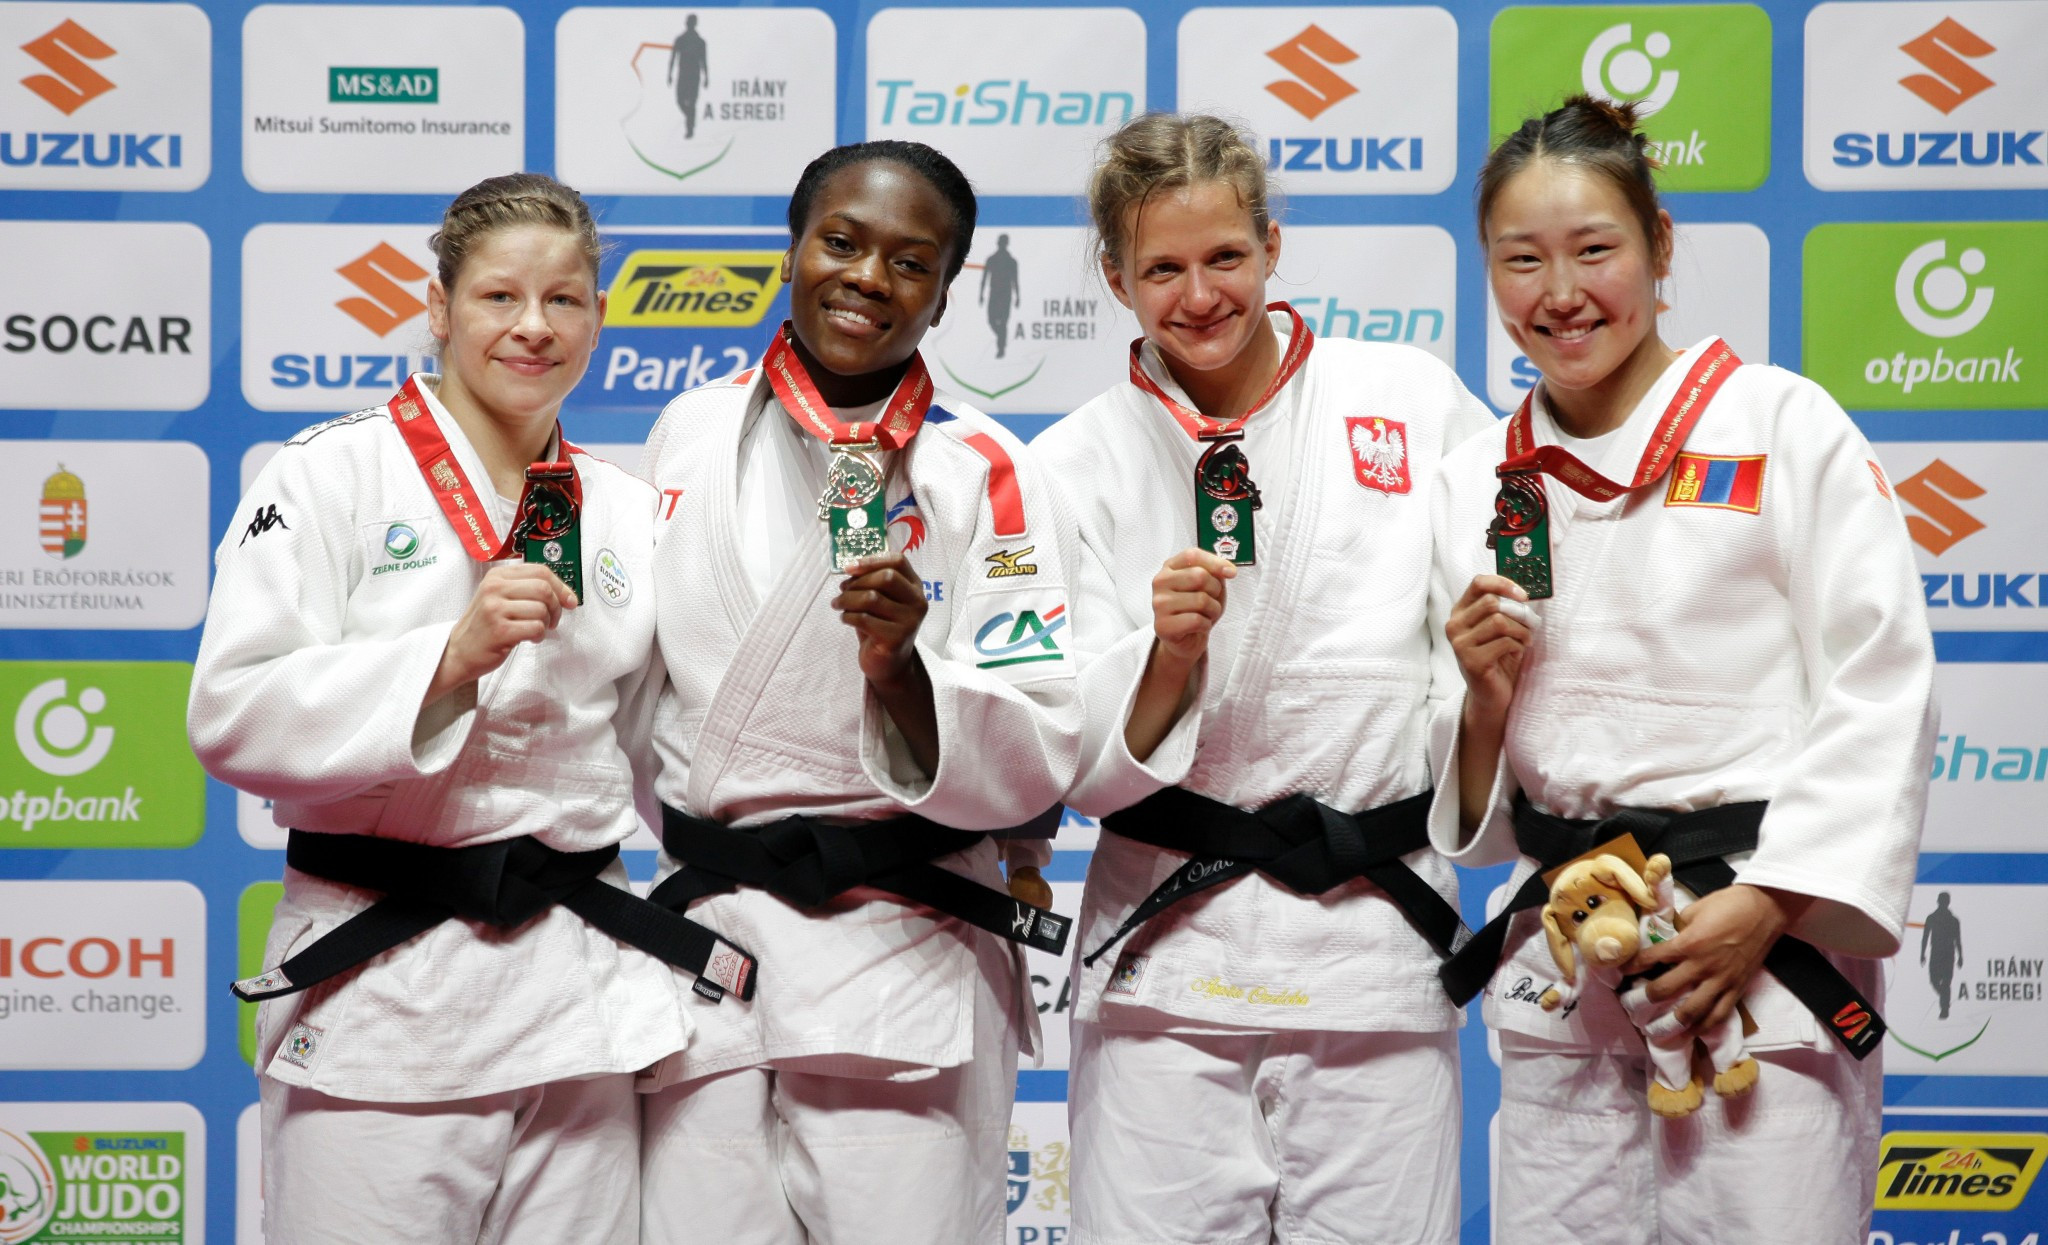 Clarisse Agbegnenou of France secured her second world title and first since 2014 ©Getty Images